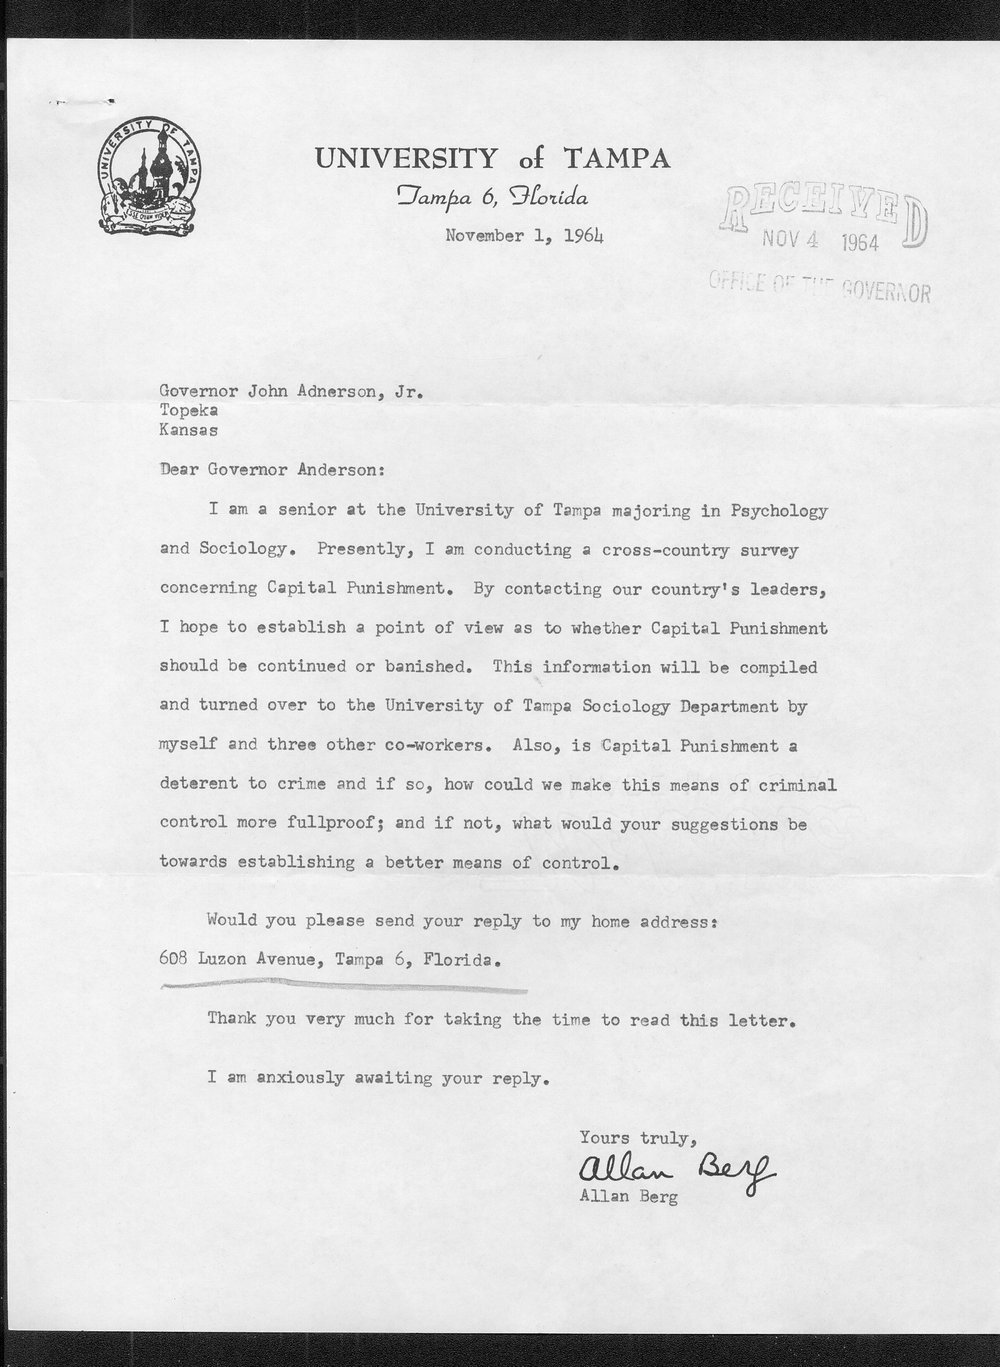 Governor John Anderson capital punishment received correspondence - 60